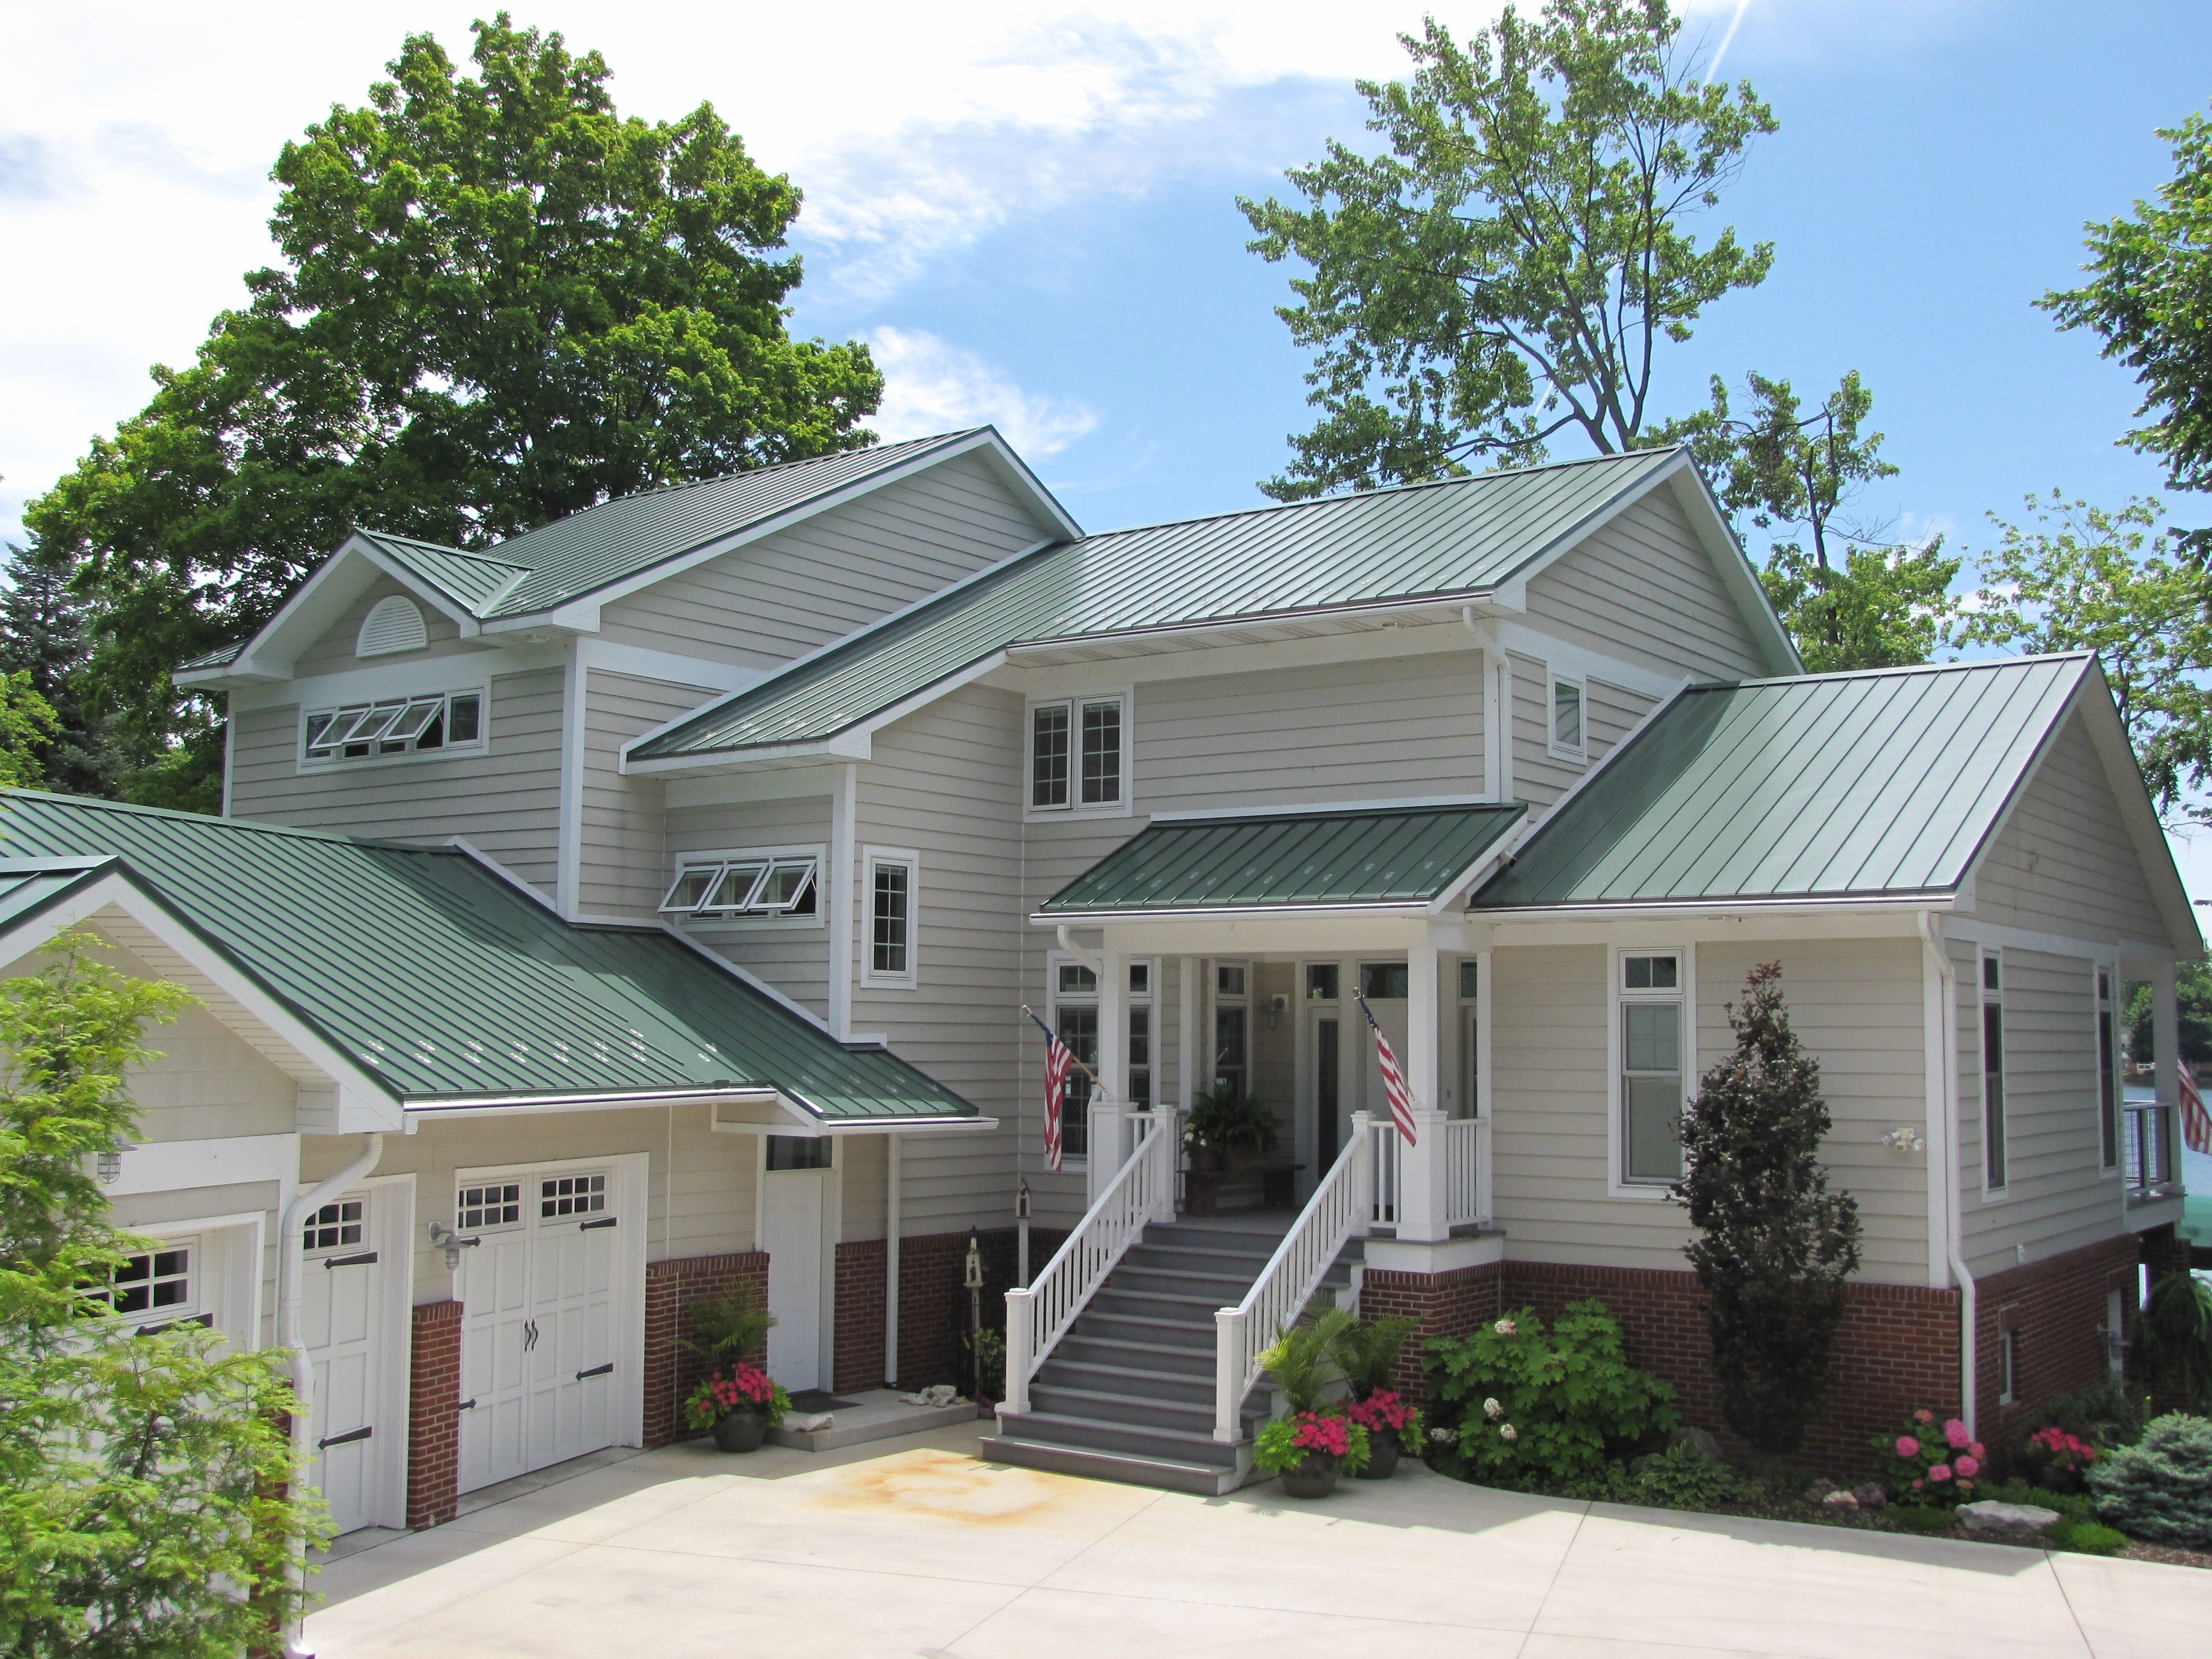 Steel Roof Metal Provided By Coated Metals Group In Classic Green Www Cmgmetals Com Project Completed By With Images Red Roof House Green Roof House House Paint Exterior